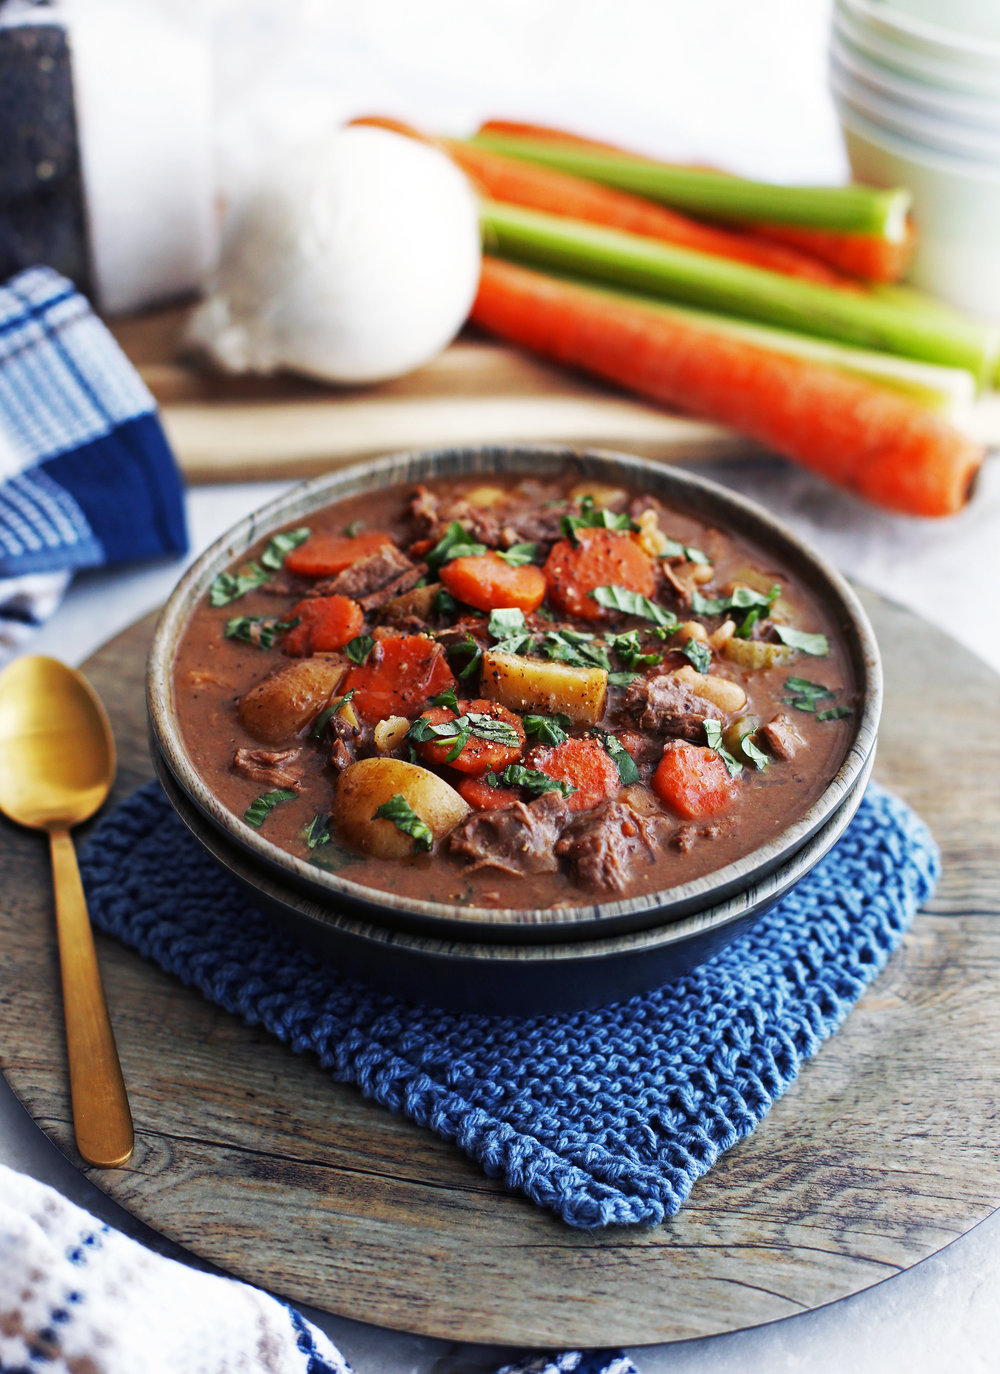 A bowl of Chinese Five-Spice Beef and Vegetable Stew, which includes carrots, potatoes, and celery.